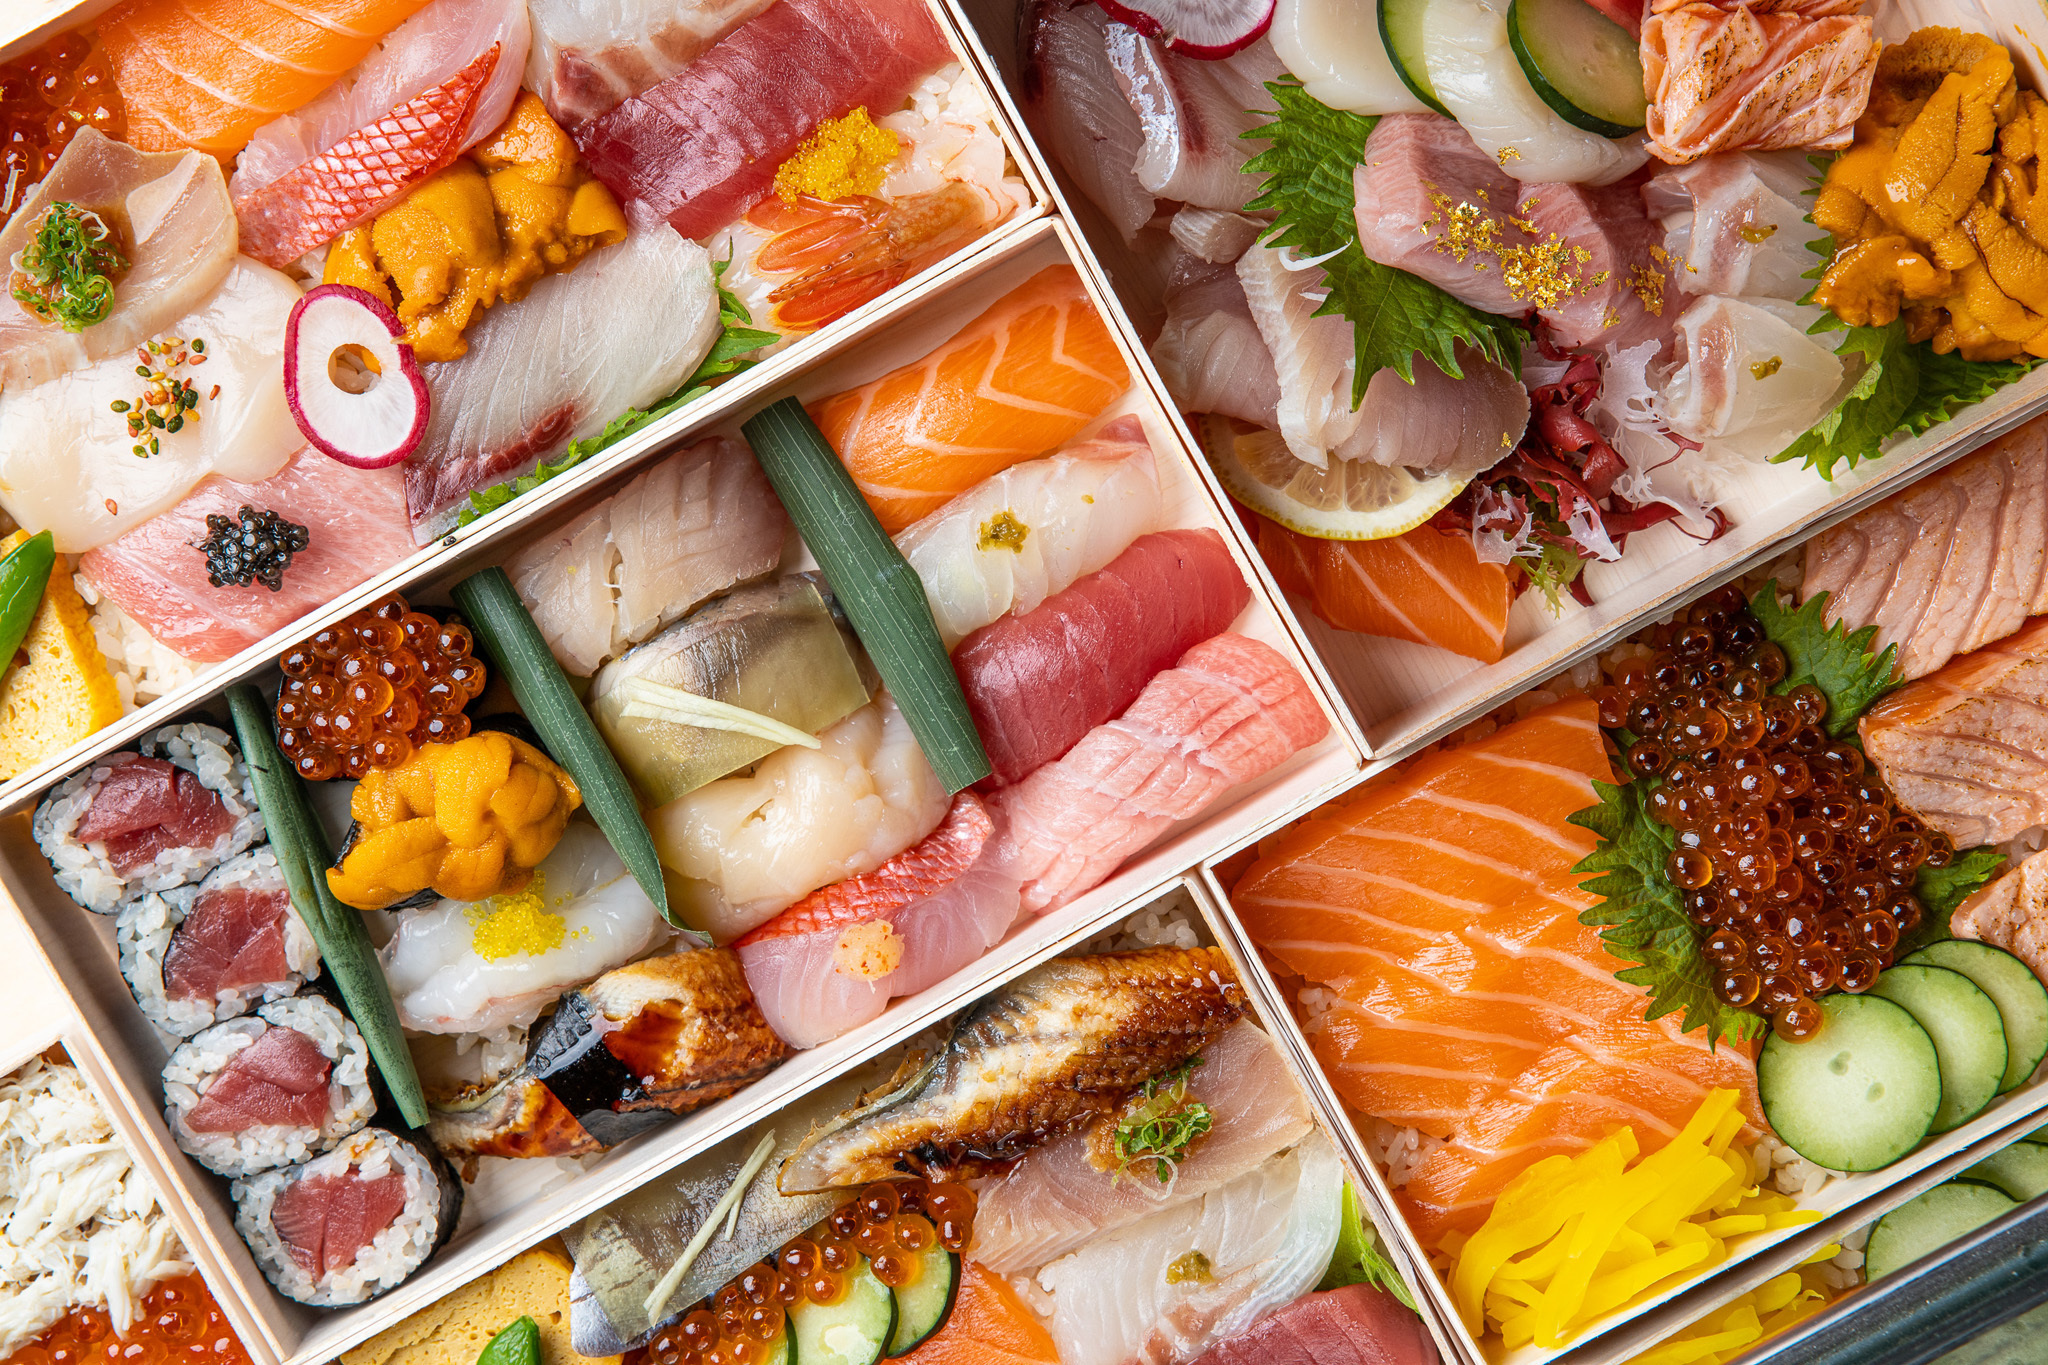 Silver Lake's new sushi bar serves chirashi and rolls from a takeout window